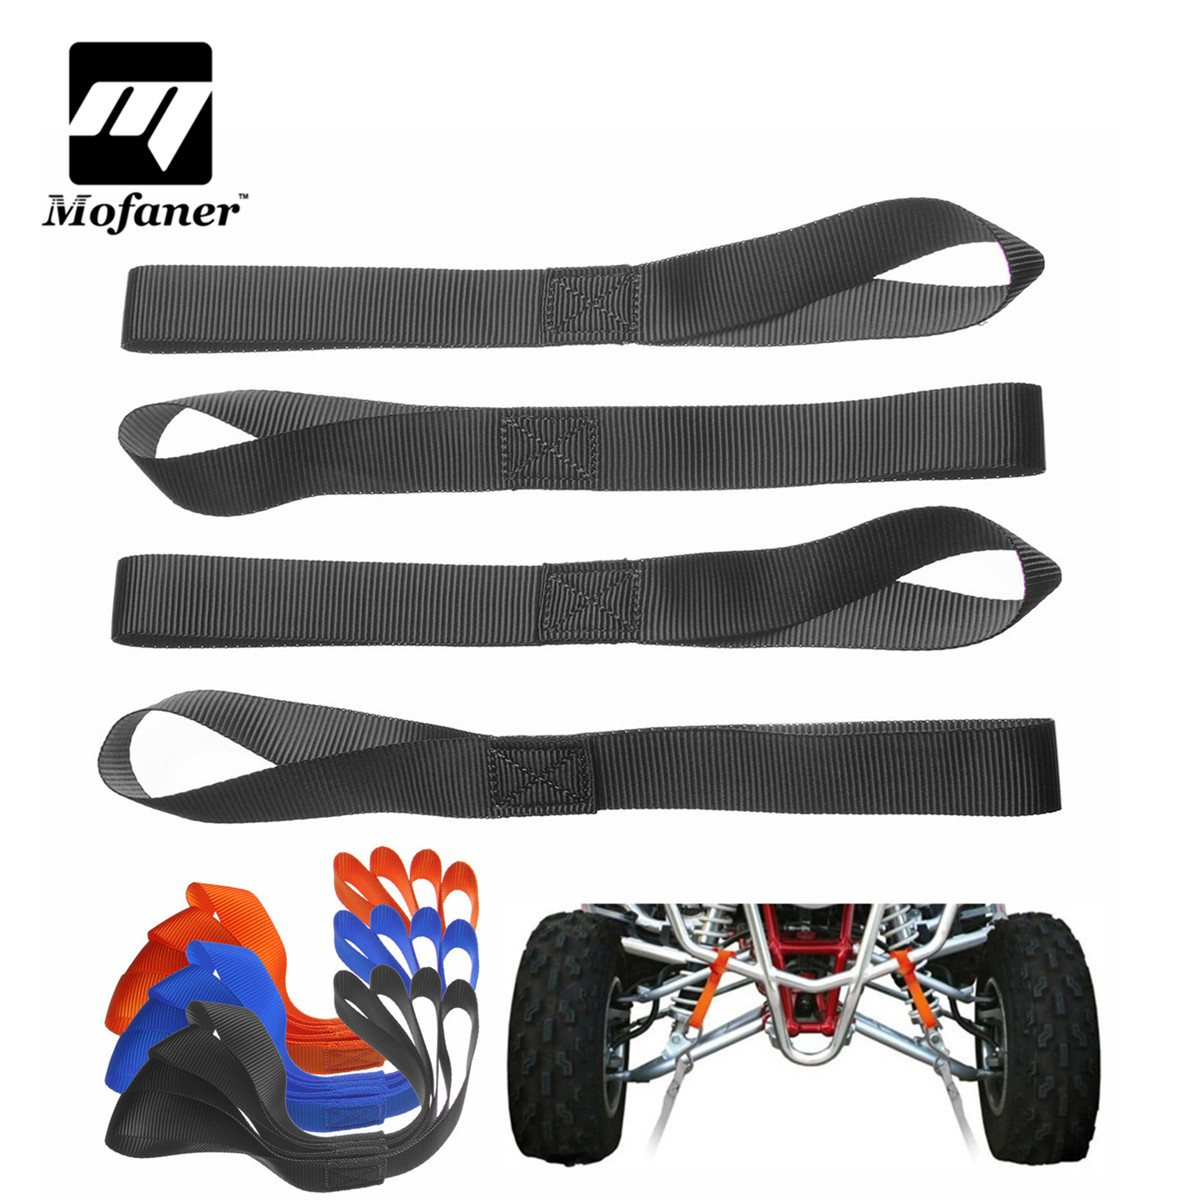 Mofaner 4 Pieces Ratchet Strap Tie Down Straps Soft Securing Loop Extension Tie For ATV Dirt Bike ratchet tie down 5mx25mm metal buckle ratchet tie down strap 10m length